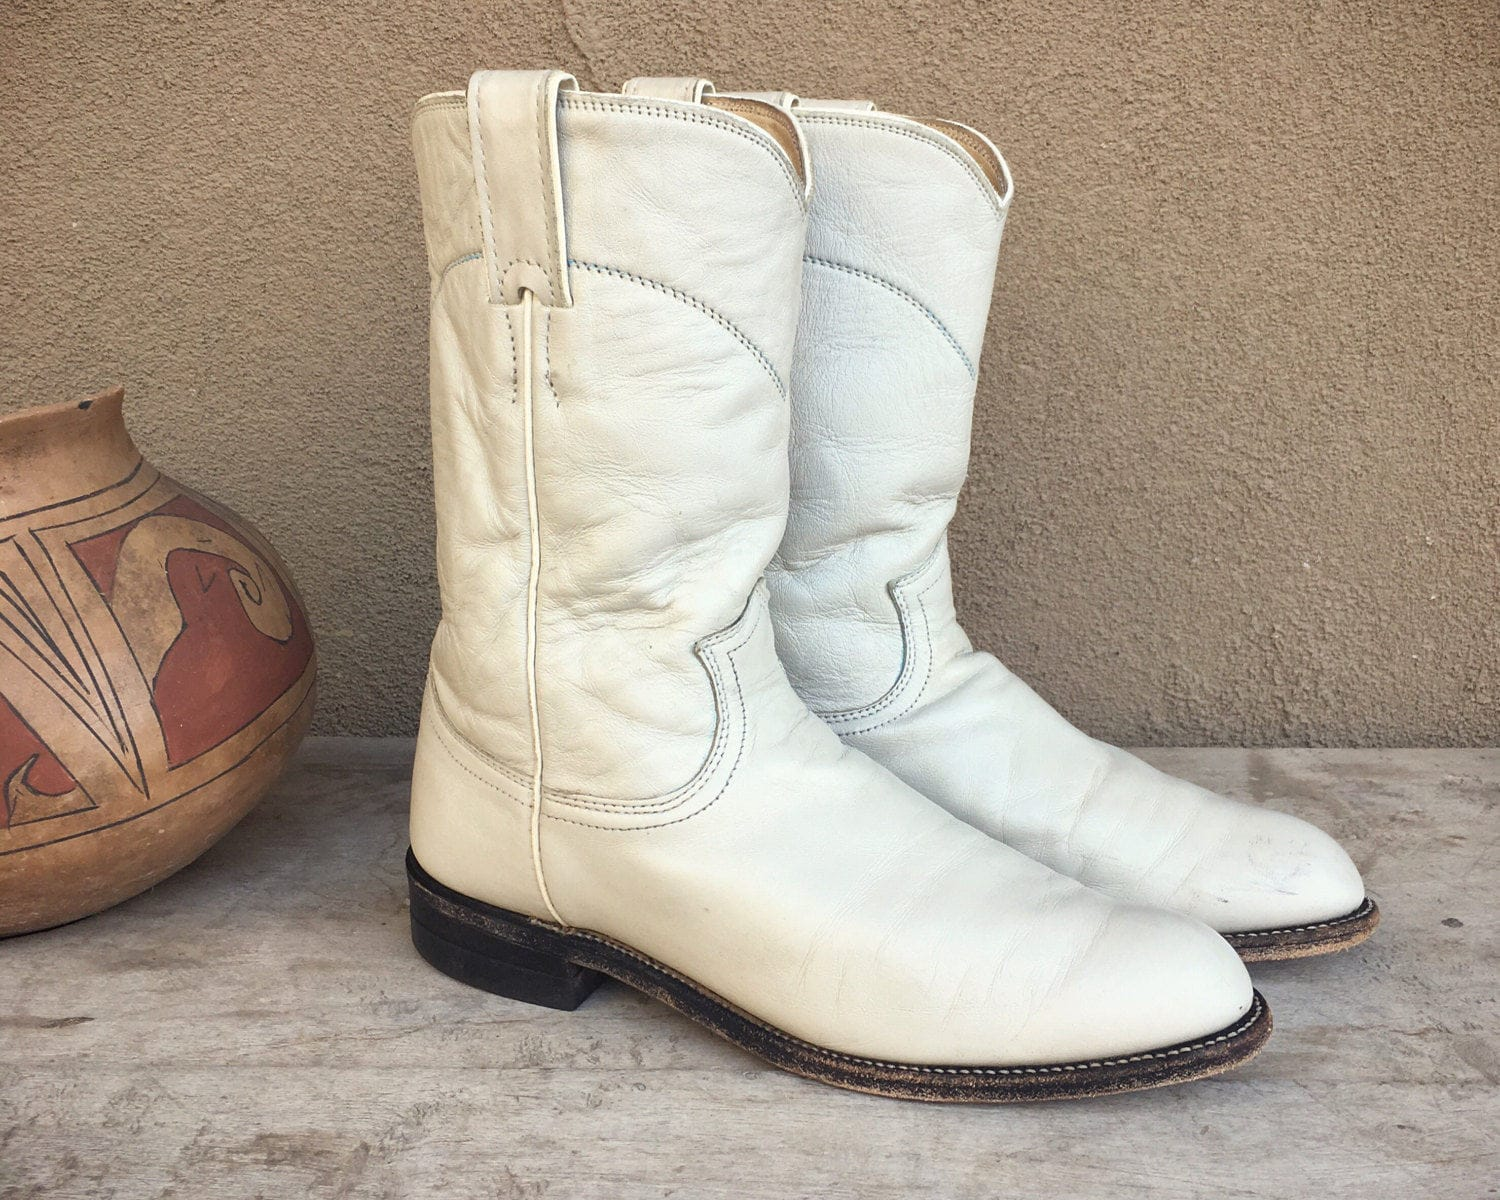 52894b6ce98 Vintage off white Justin roper cowboy boot Women size 6.5 C (fits like ...